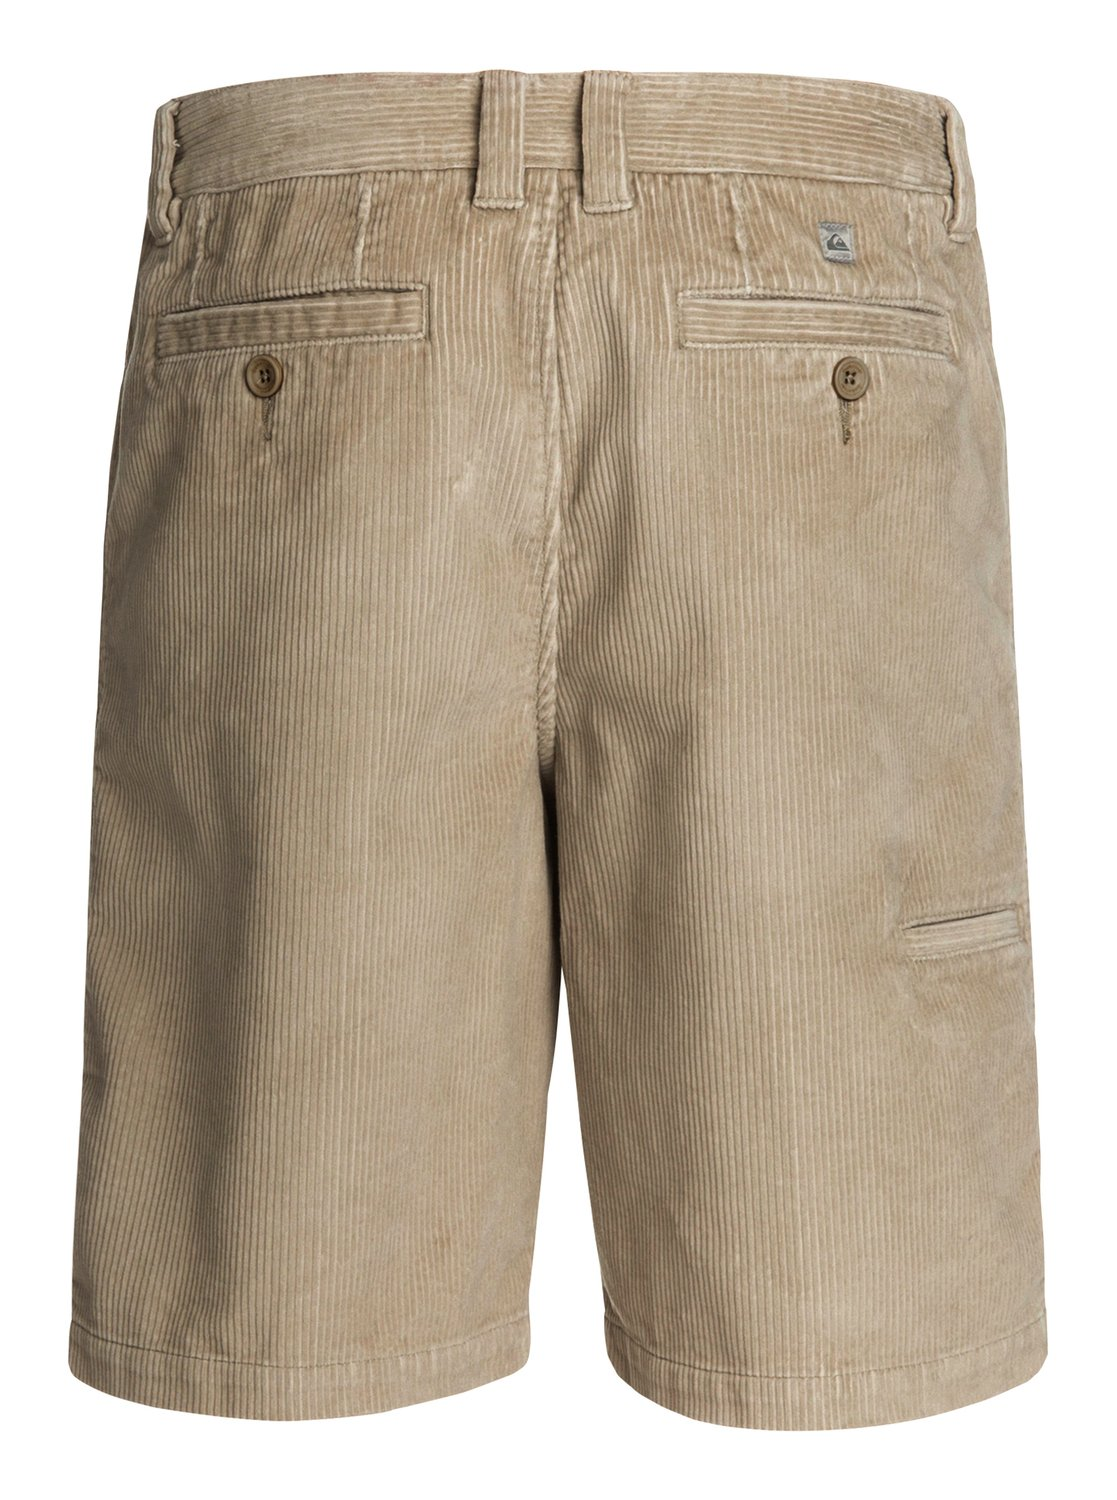 Men's Corduroy Shorts If you thought corduroy shorts were still just for dads, it's about time you reconsidered the trend. This season, the classic staple has been transformed into a must-have item thanks to brands like Stussy, Huf and Calvin Klein, who have successfully made cords cool again.